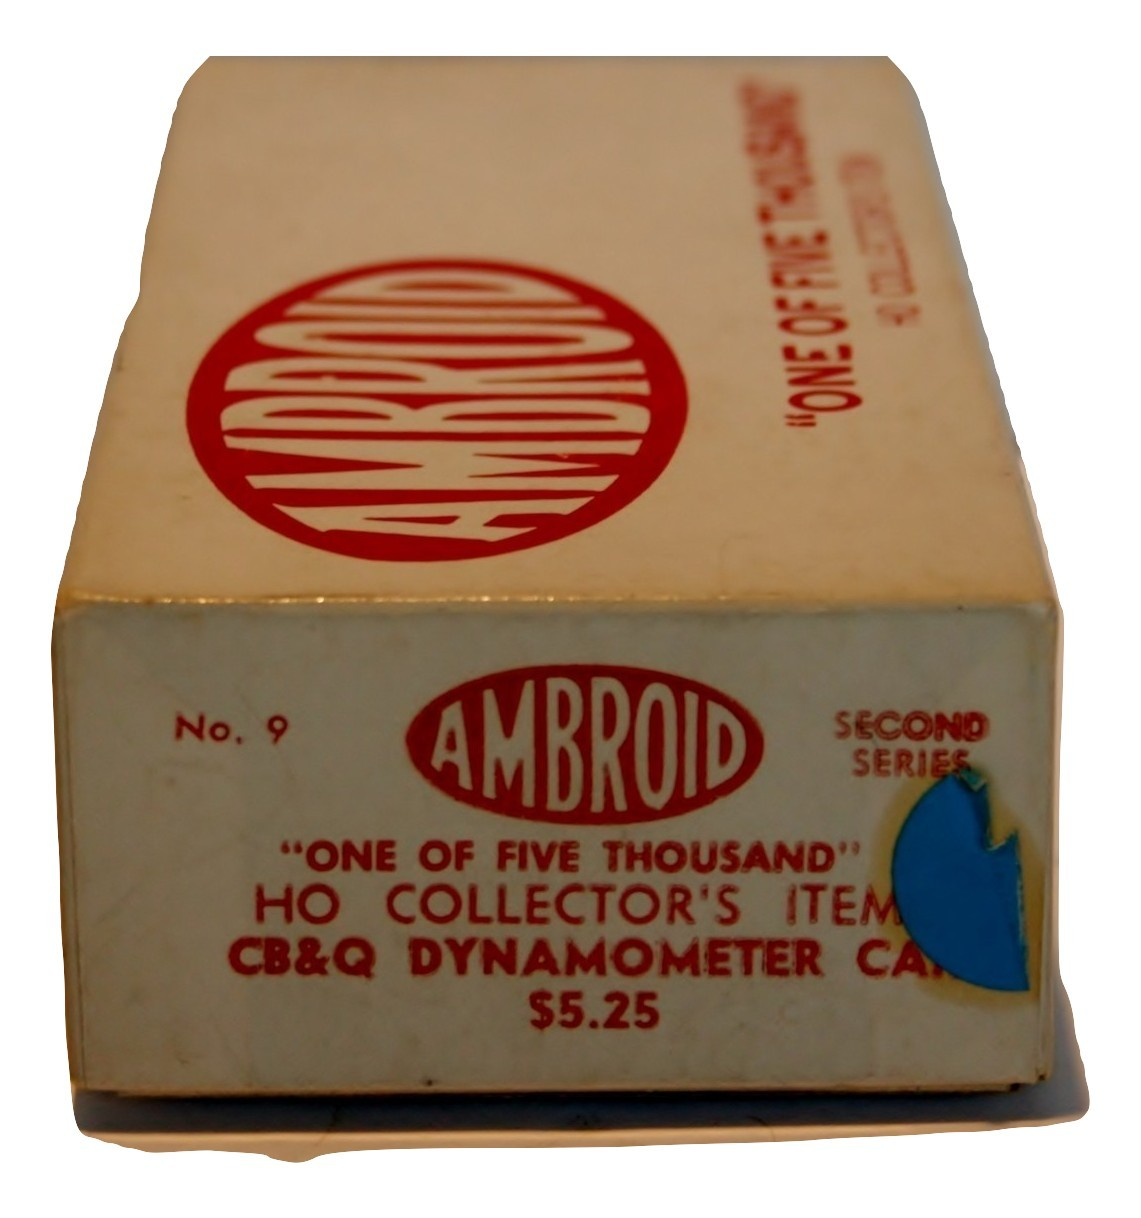 Ambroid One of 5000, HO Collectors Item CB&Q Dynamometer Car, New #9 2nd Series